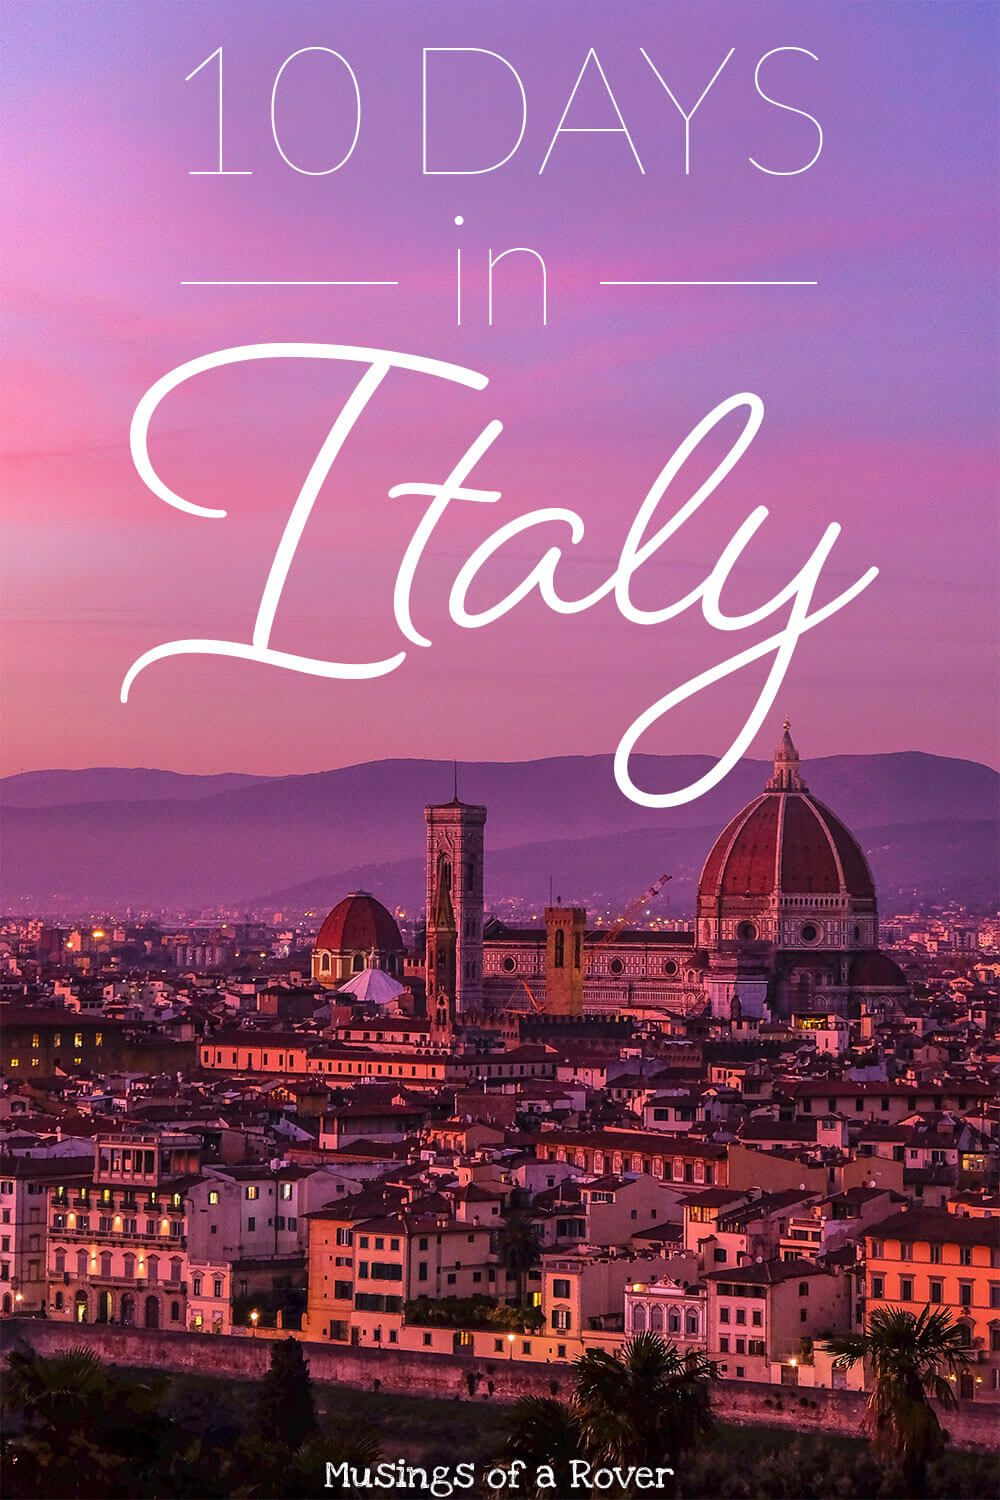 Traveling to Italy? This itinerary features 10 Days in Italy including Venice, Florence, Milan, and a day trip to Pisa. This guide has you covered on what to do, where to stay, where to eat, and how to get around. It has everything you need for your 10 day trip to Italy. italy travel tips, florence travel tips, venice travel tips, italy travel guide,